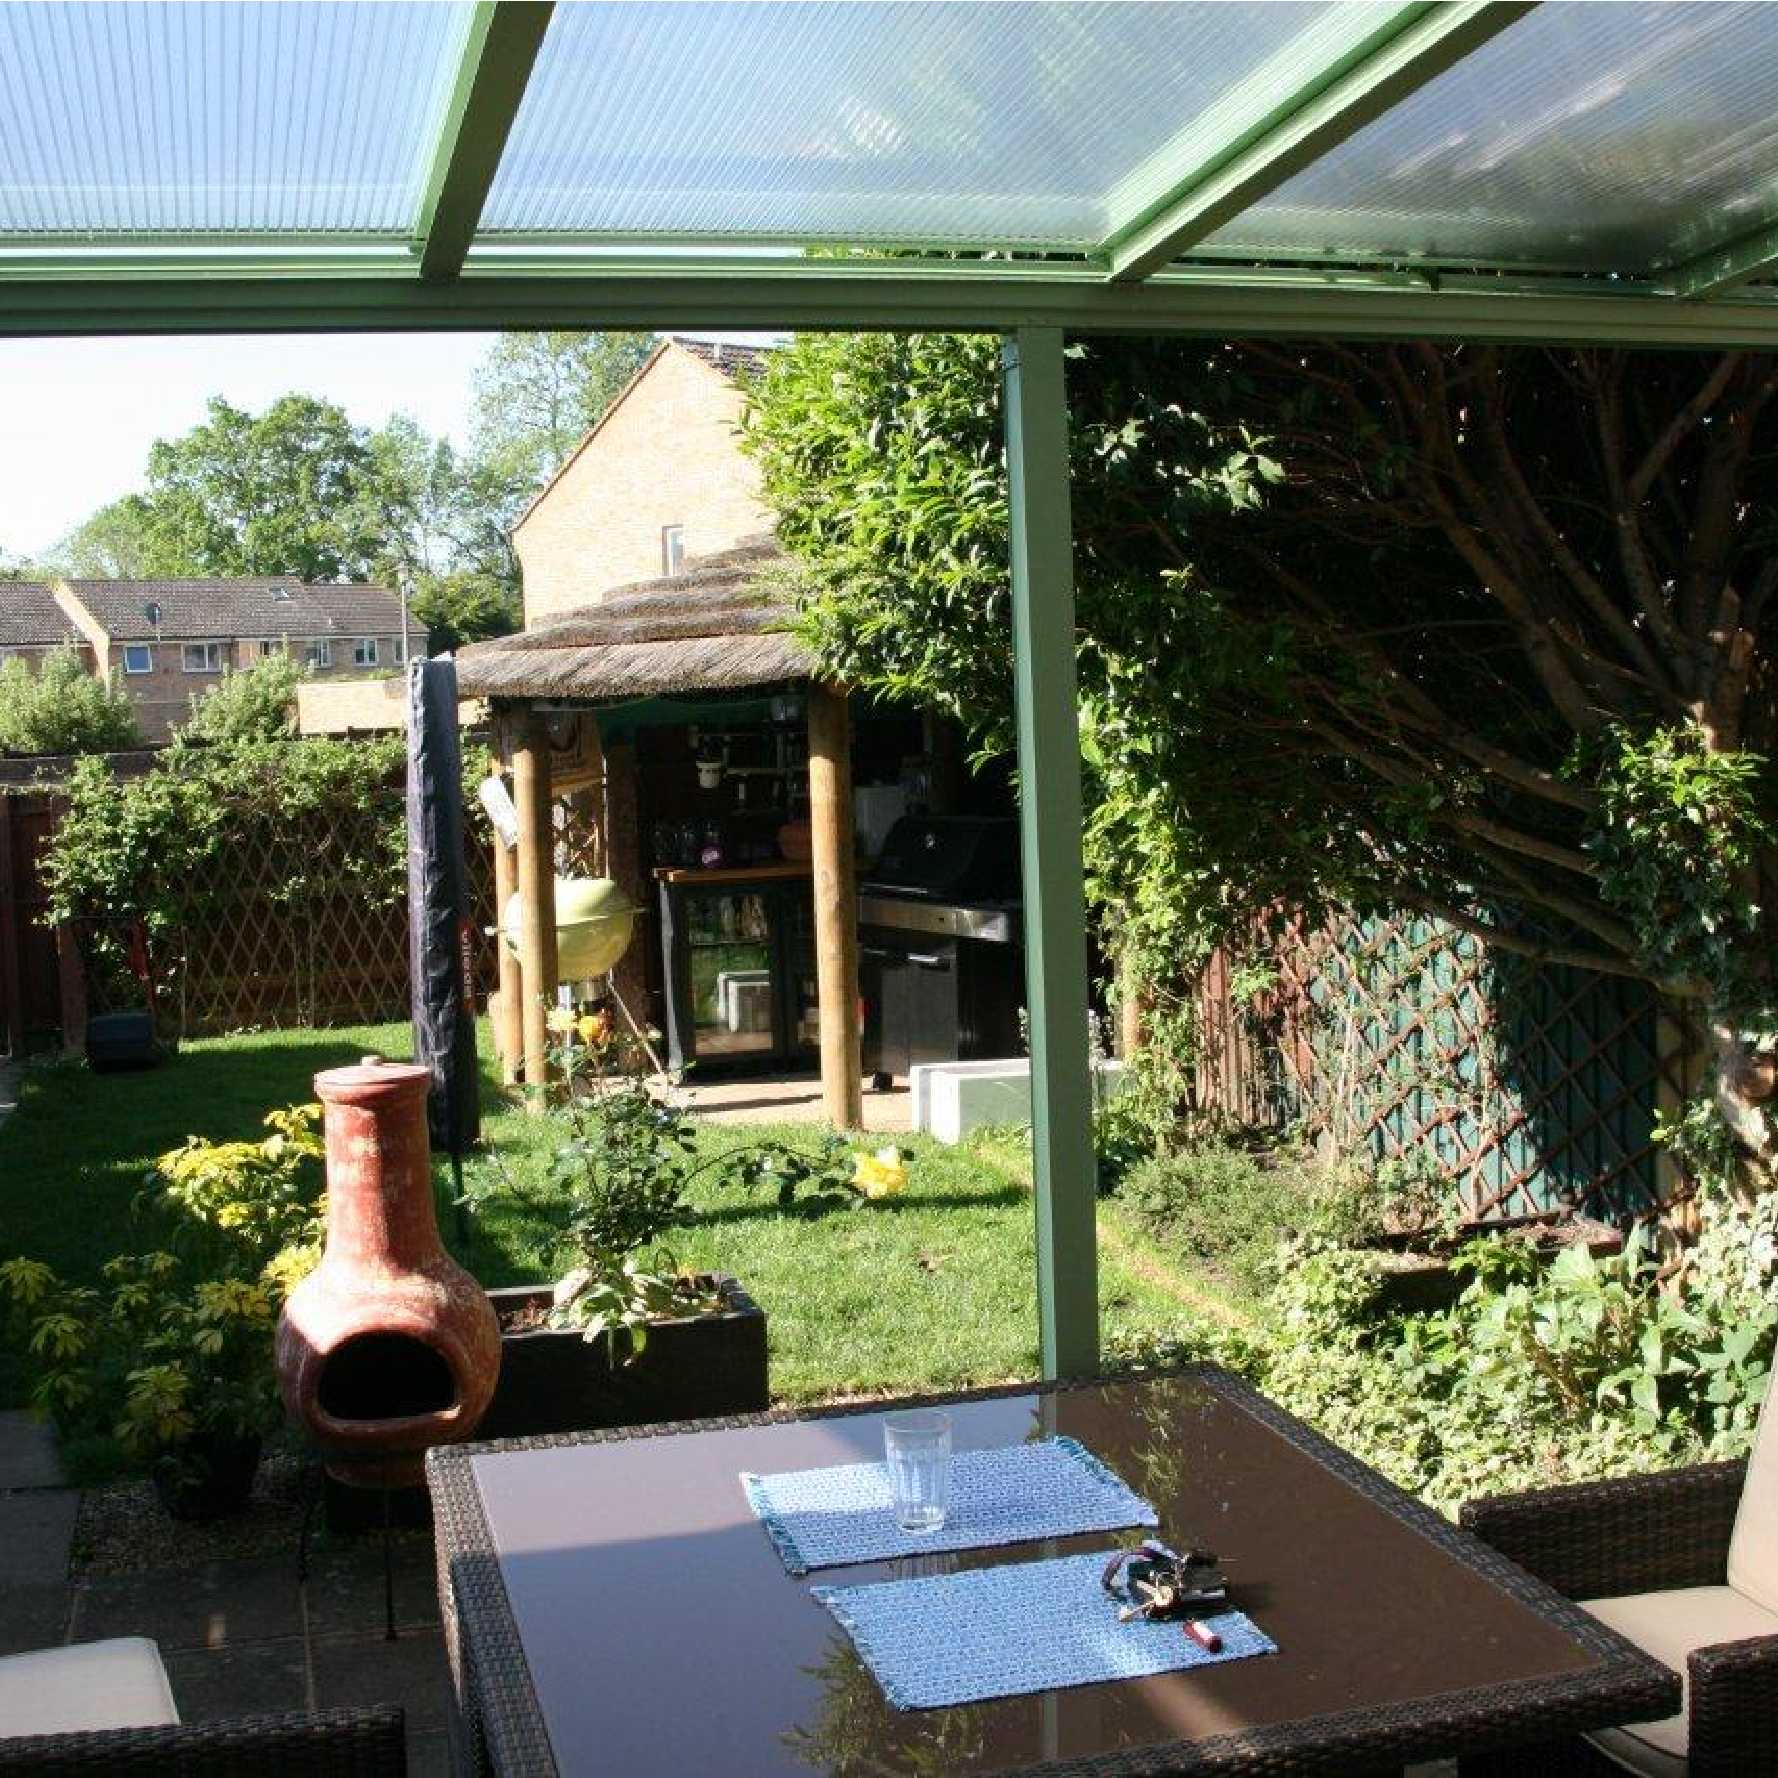 Affordable Omega Smart White Lean-To Canopy with 16mm Polycarbonate Glazing - 3.5m (W) x 3.5m (P), (3) Supporting Posts